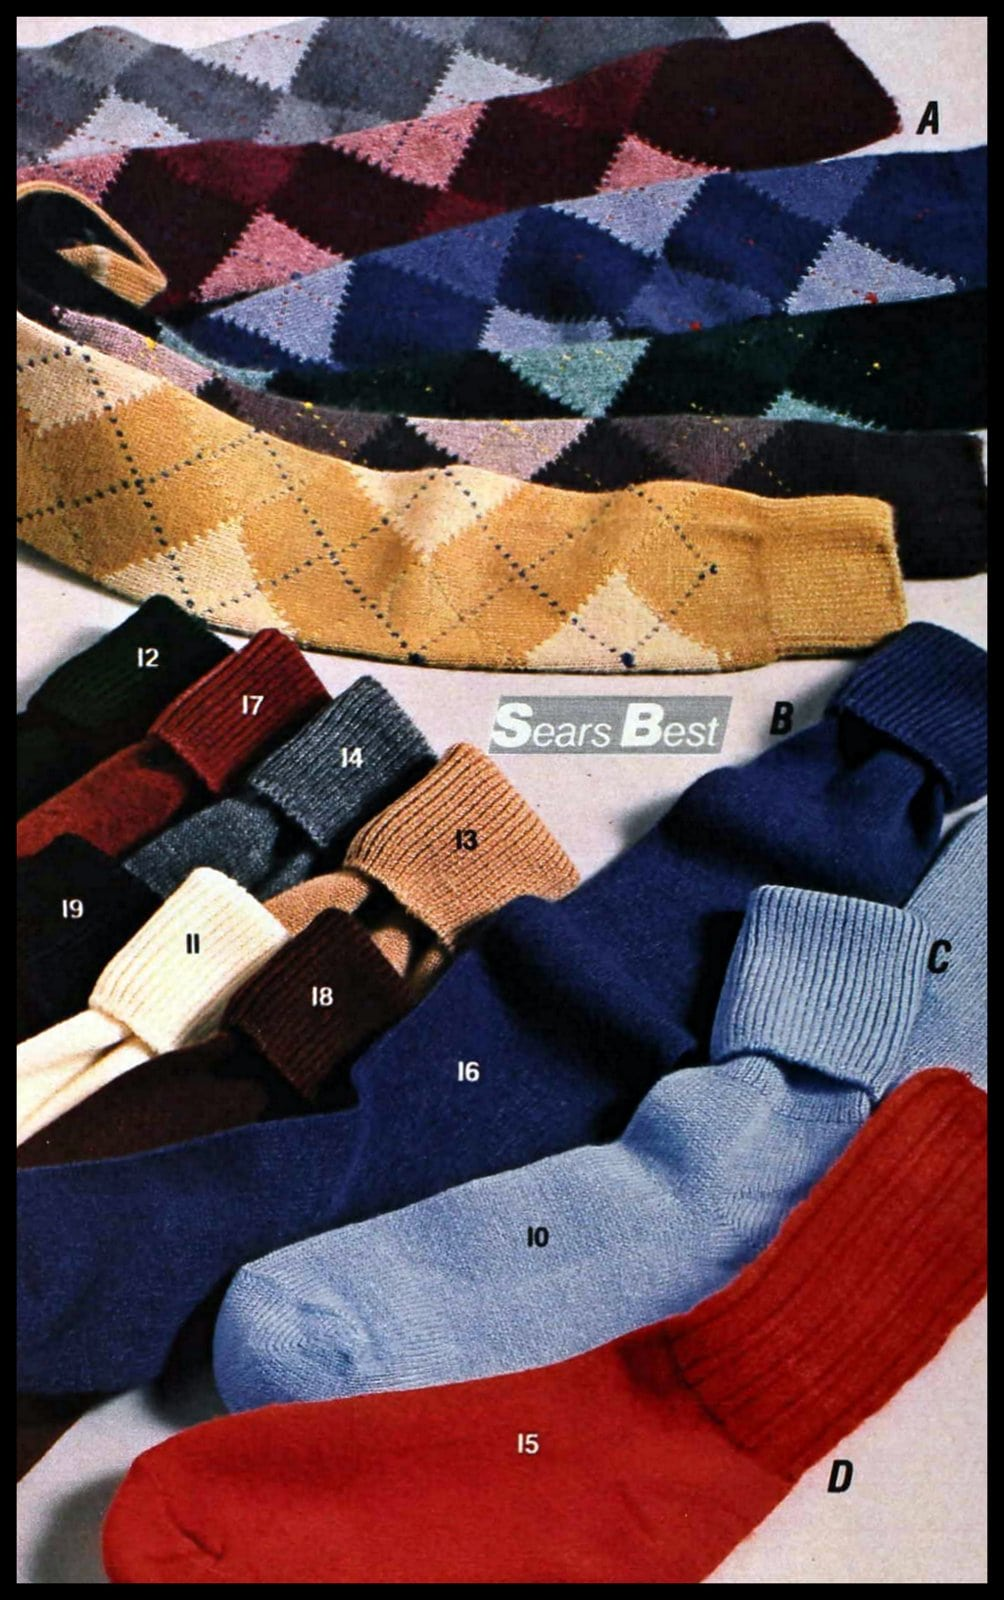 Vintage knee sock styles from the late 1980s (3)